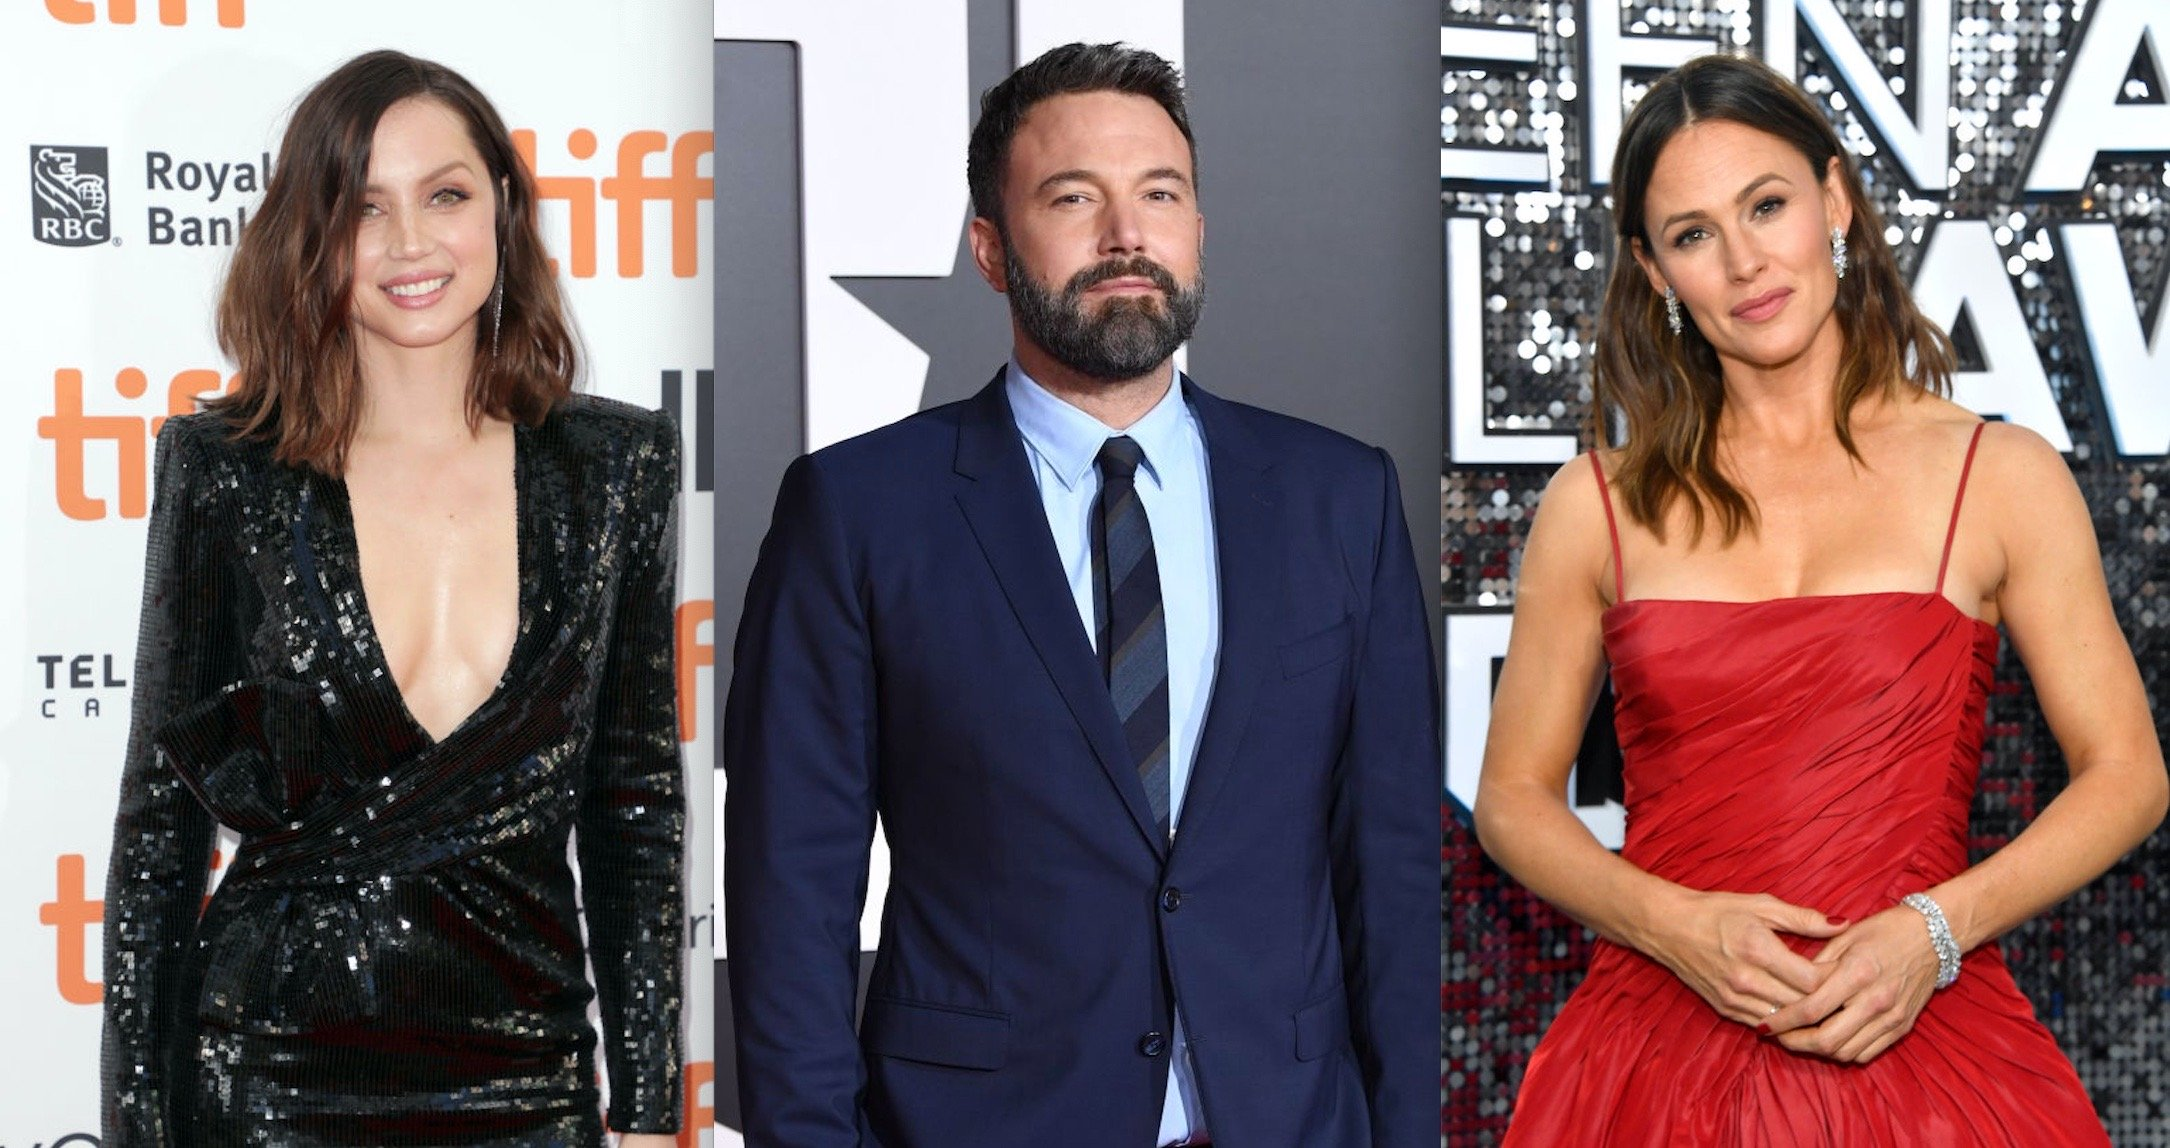 Jennifer Garner supports Ben Affleck and Ana de Armas Marriage